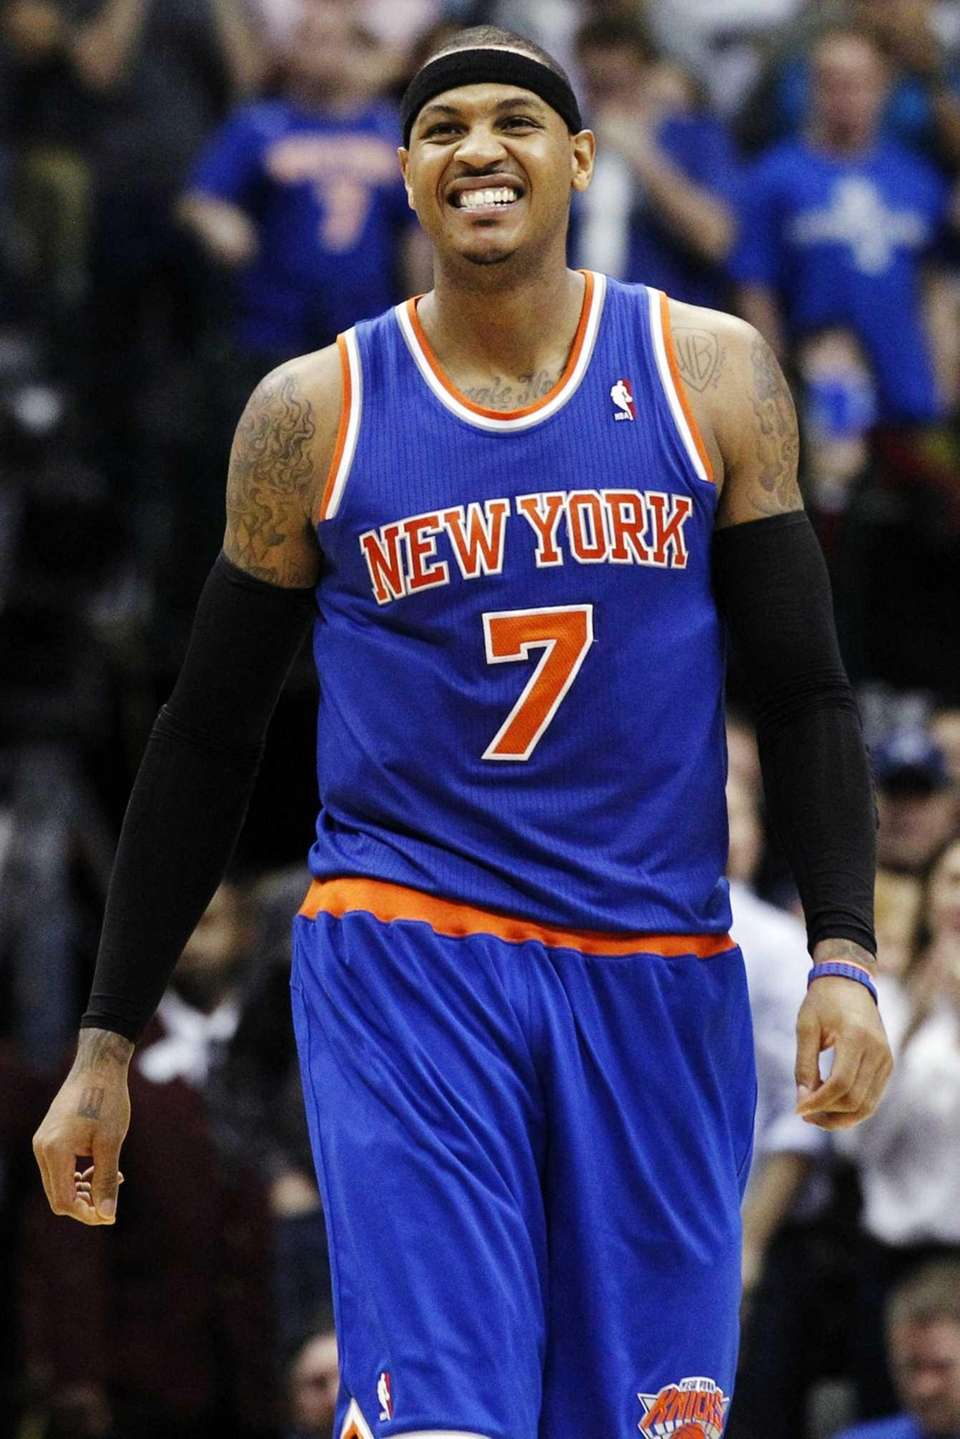 Carmelo Anthony reacts as he walks back to